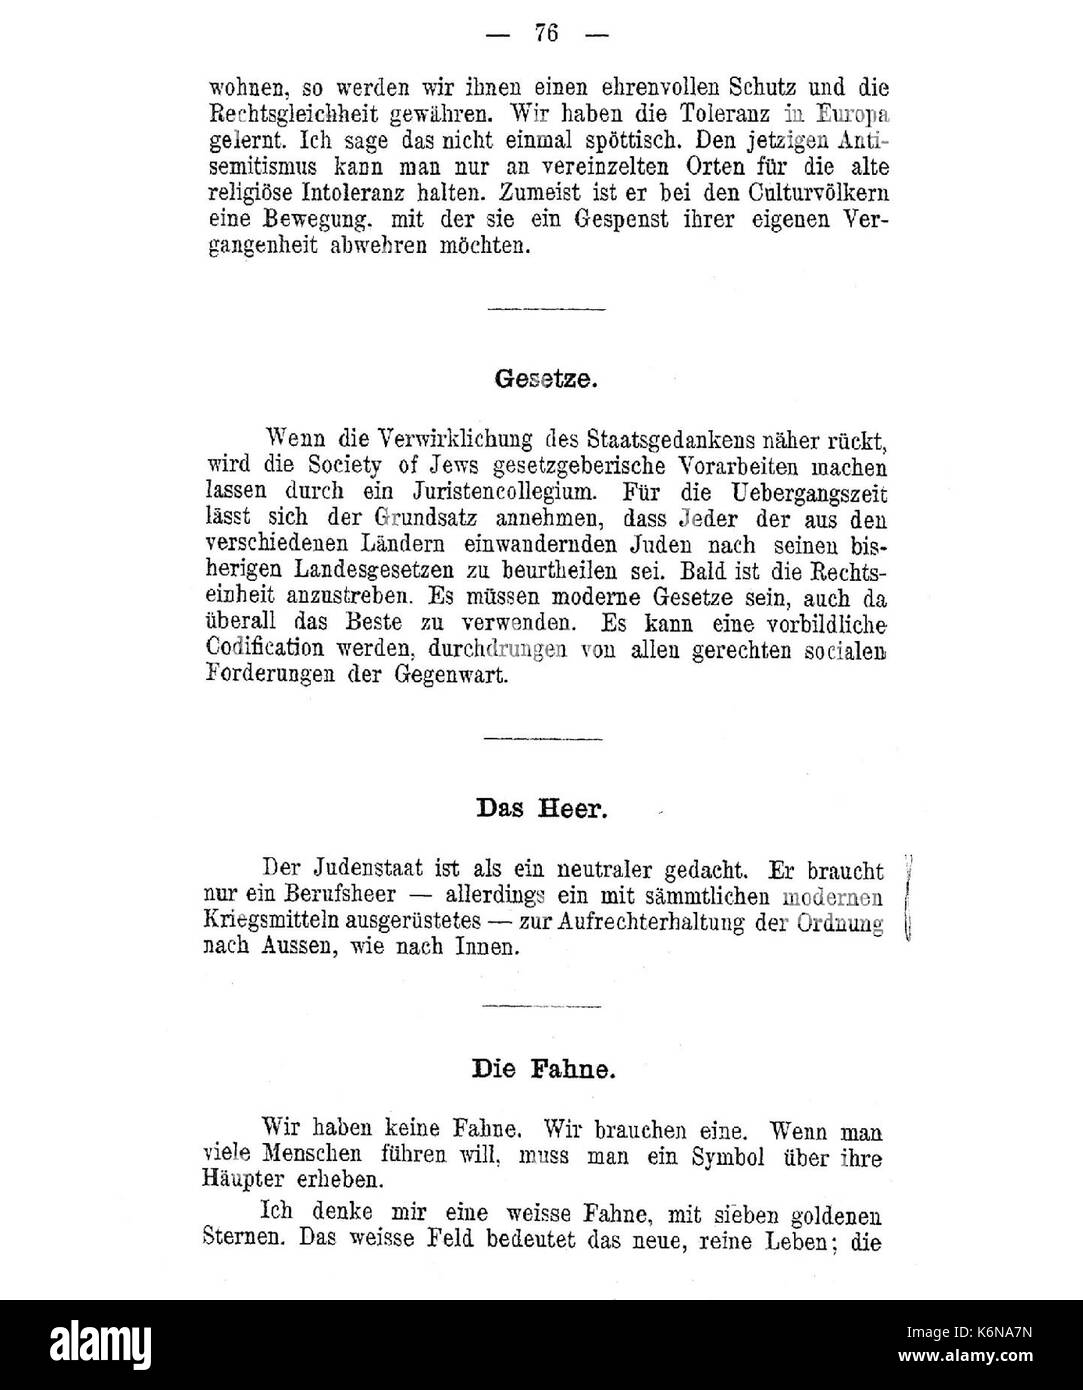 Herzl black and white stock photos images page 2 alamy de herzl judenstaat 76 stock image buycottarizona